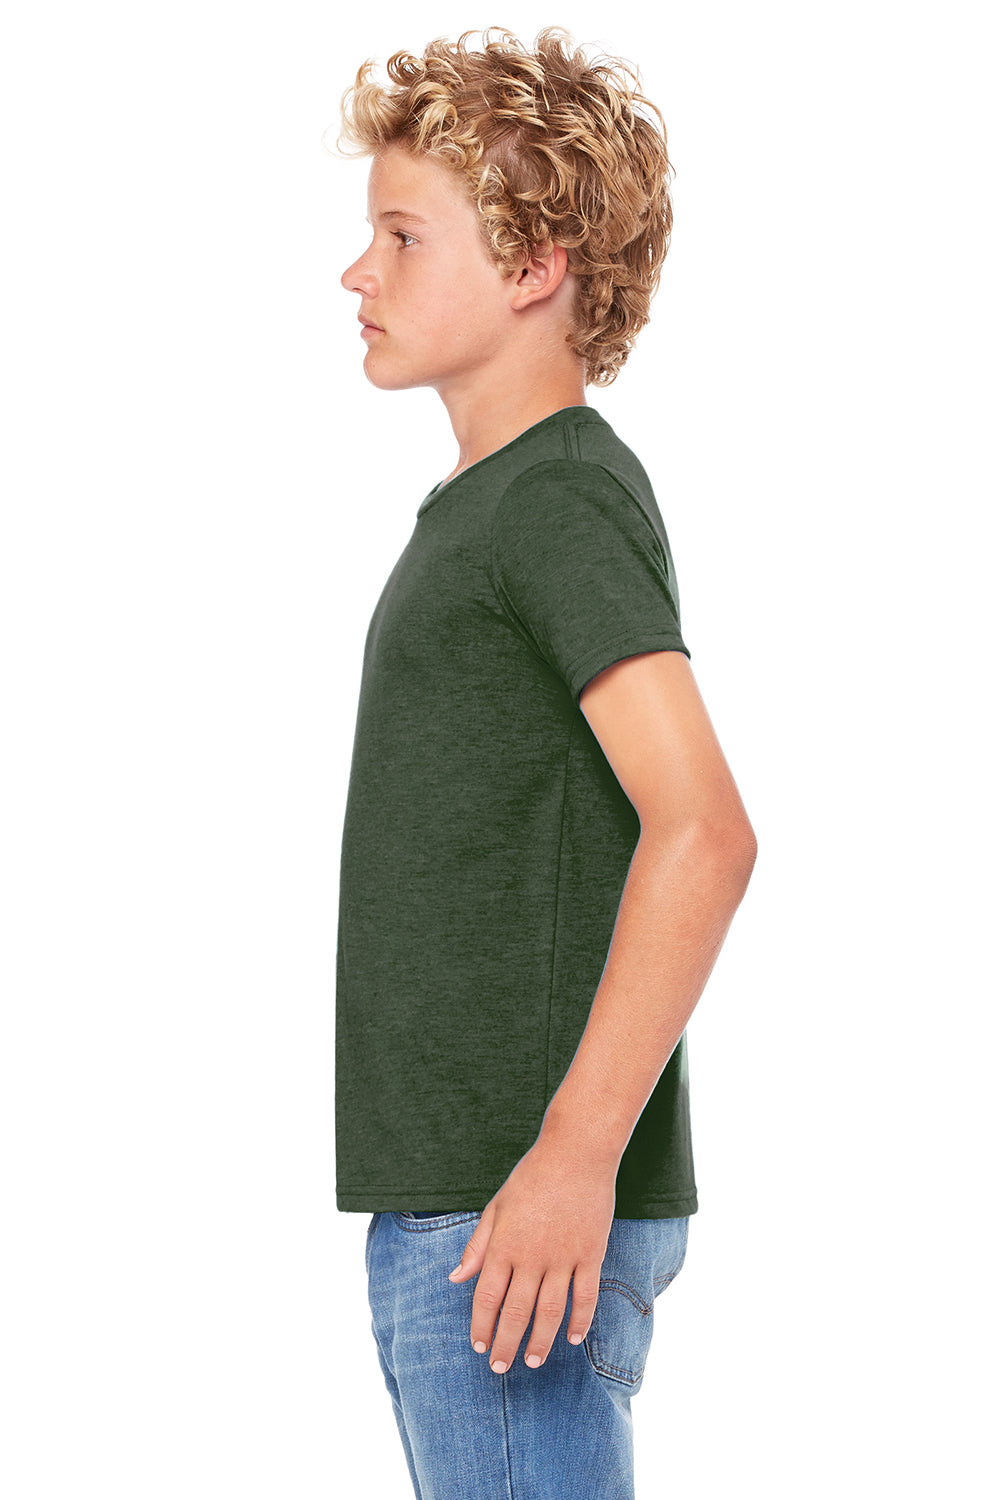 Bella + Canvas 3001Y Youth Jersey Short Sleeve Crewneck T-Shirt Heather Forest Green Side